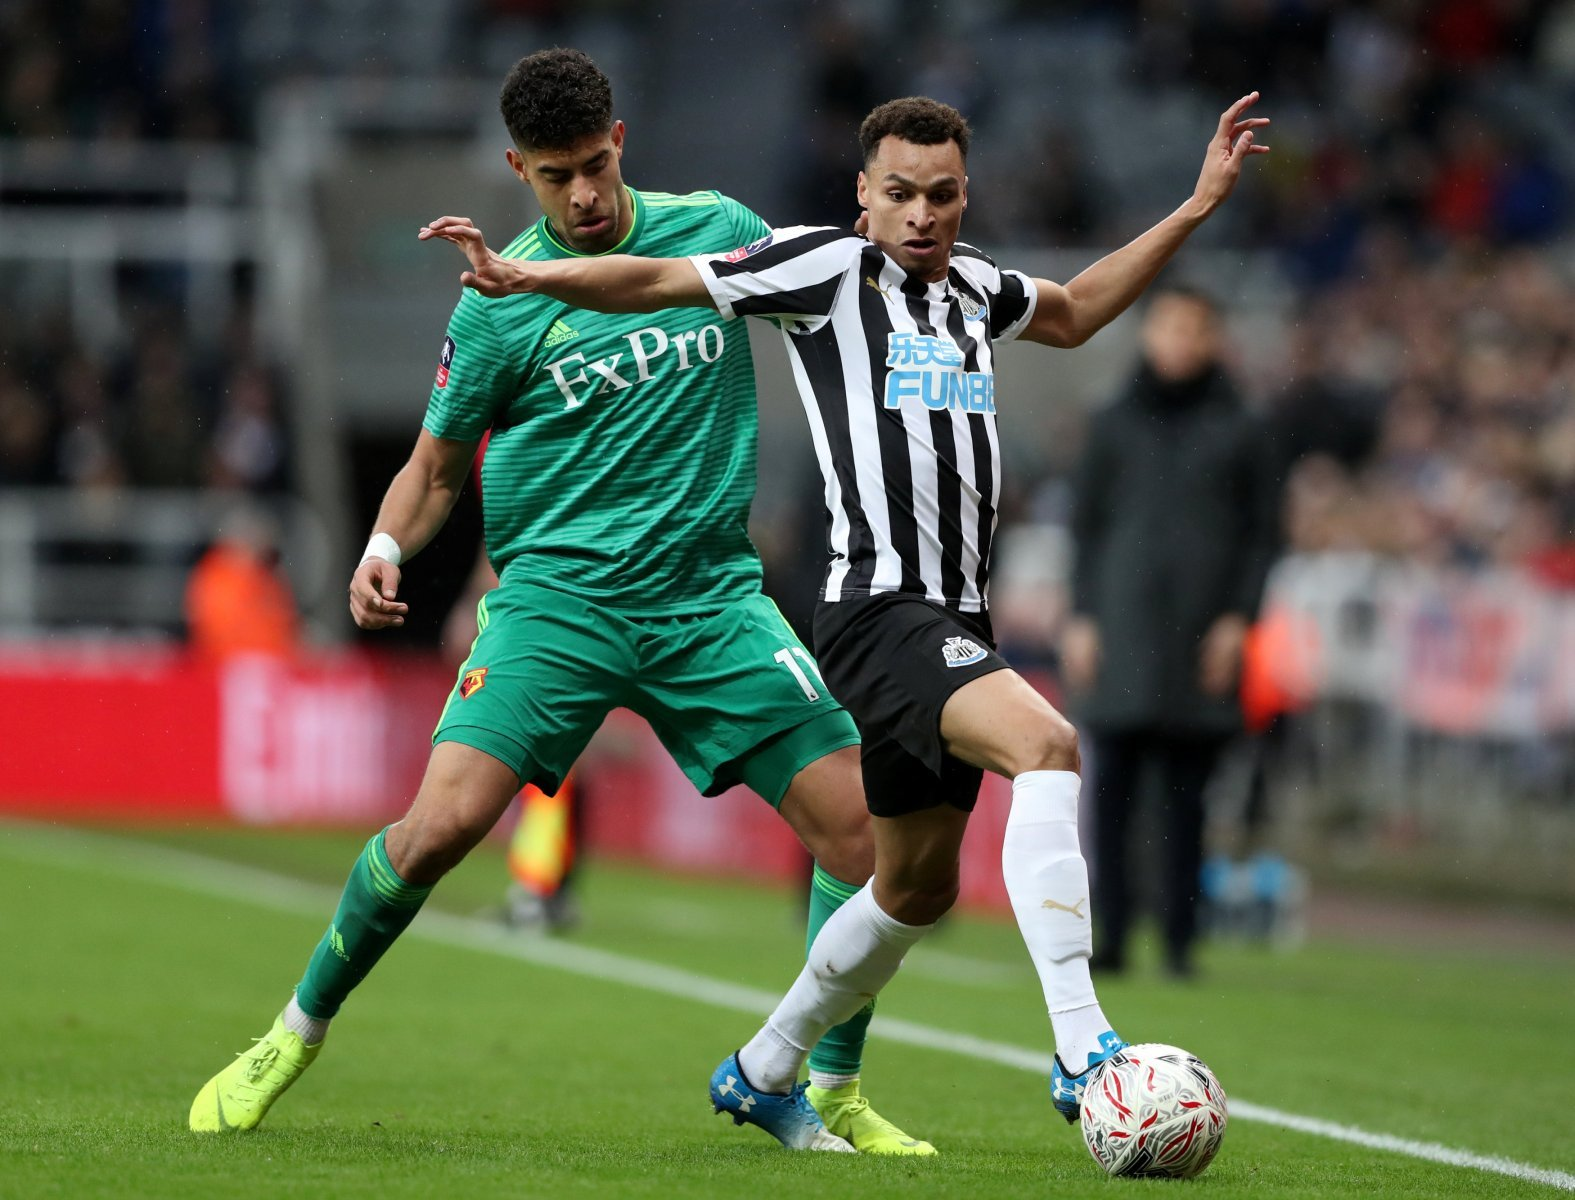 The door could be ajar for Darren Moore to finally lure Jacob Murphy to West Brom